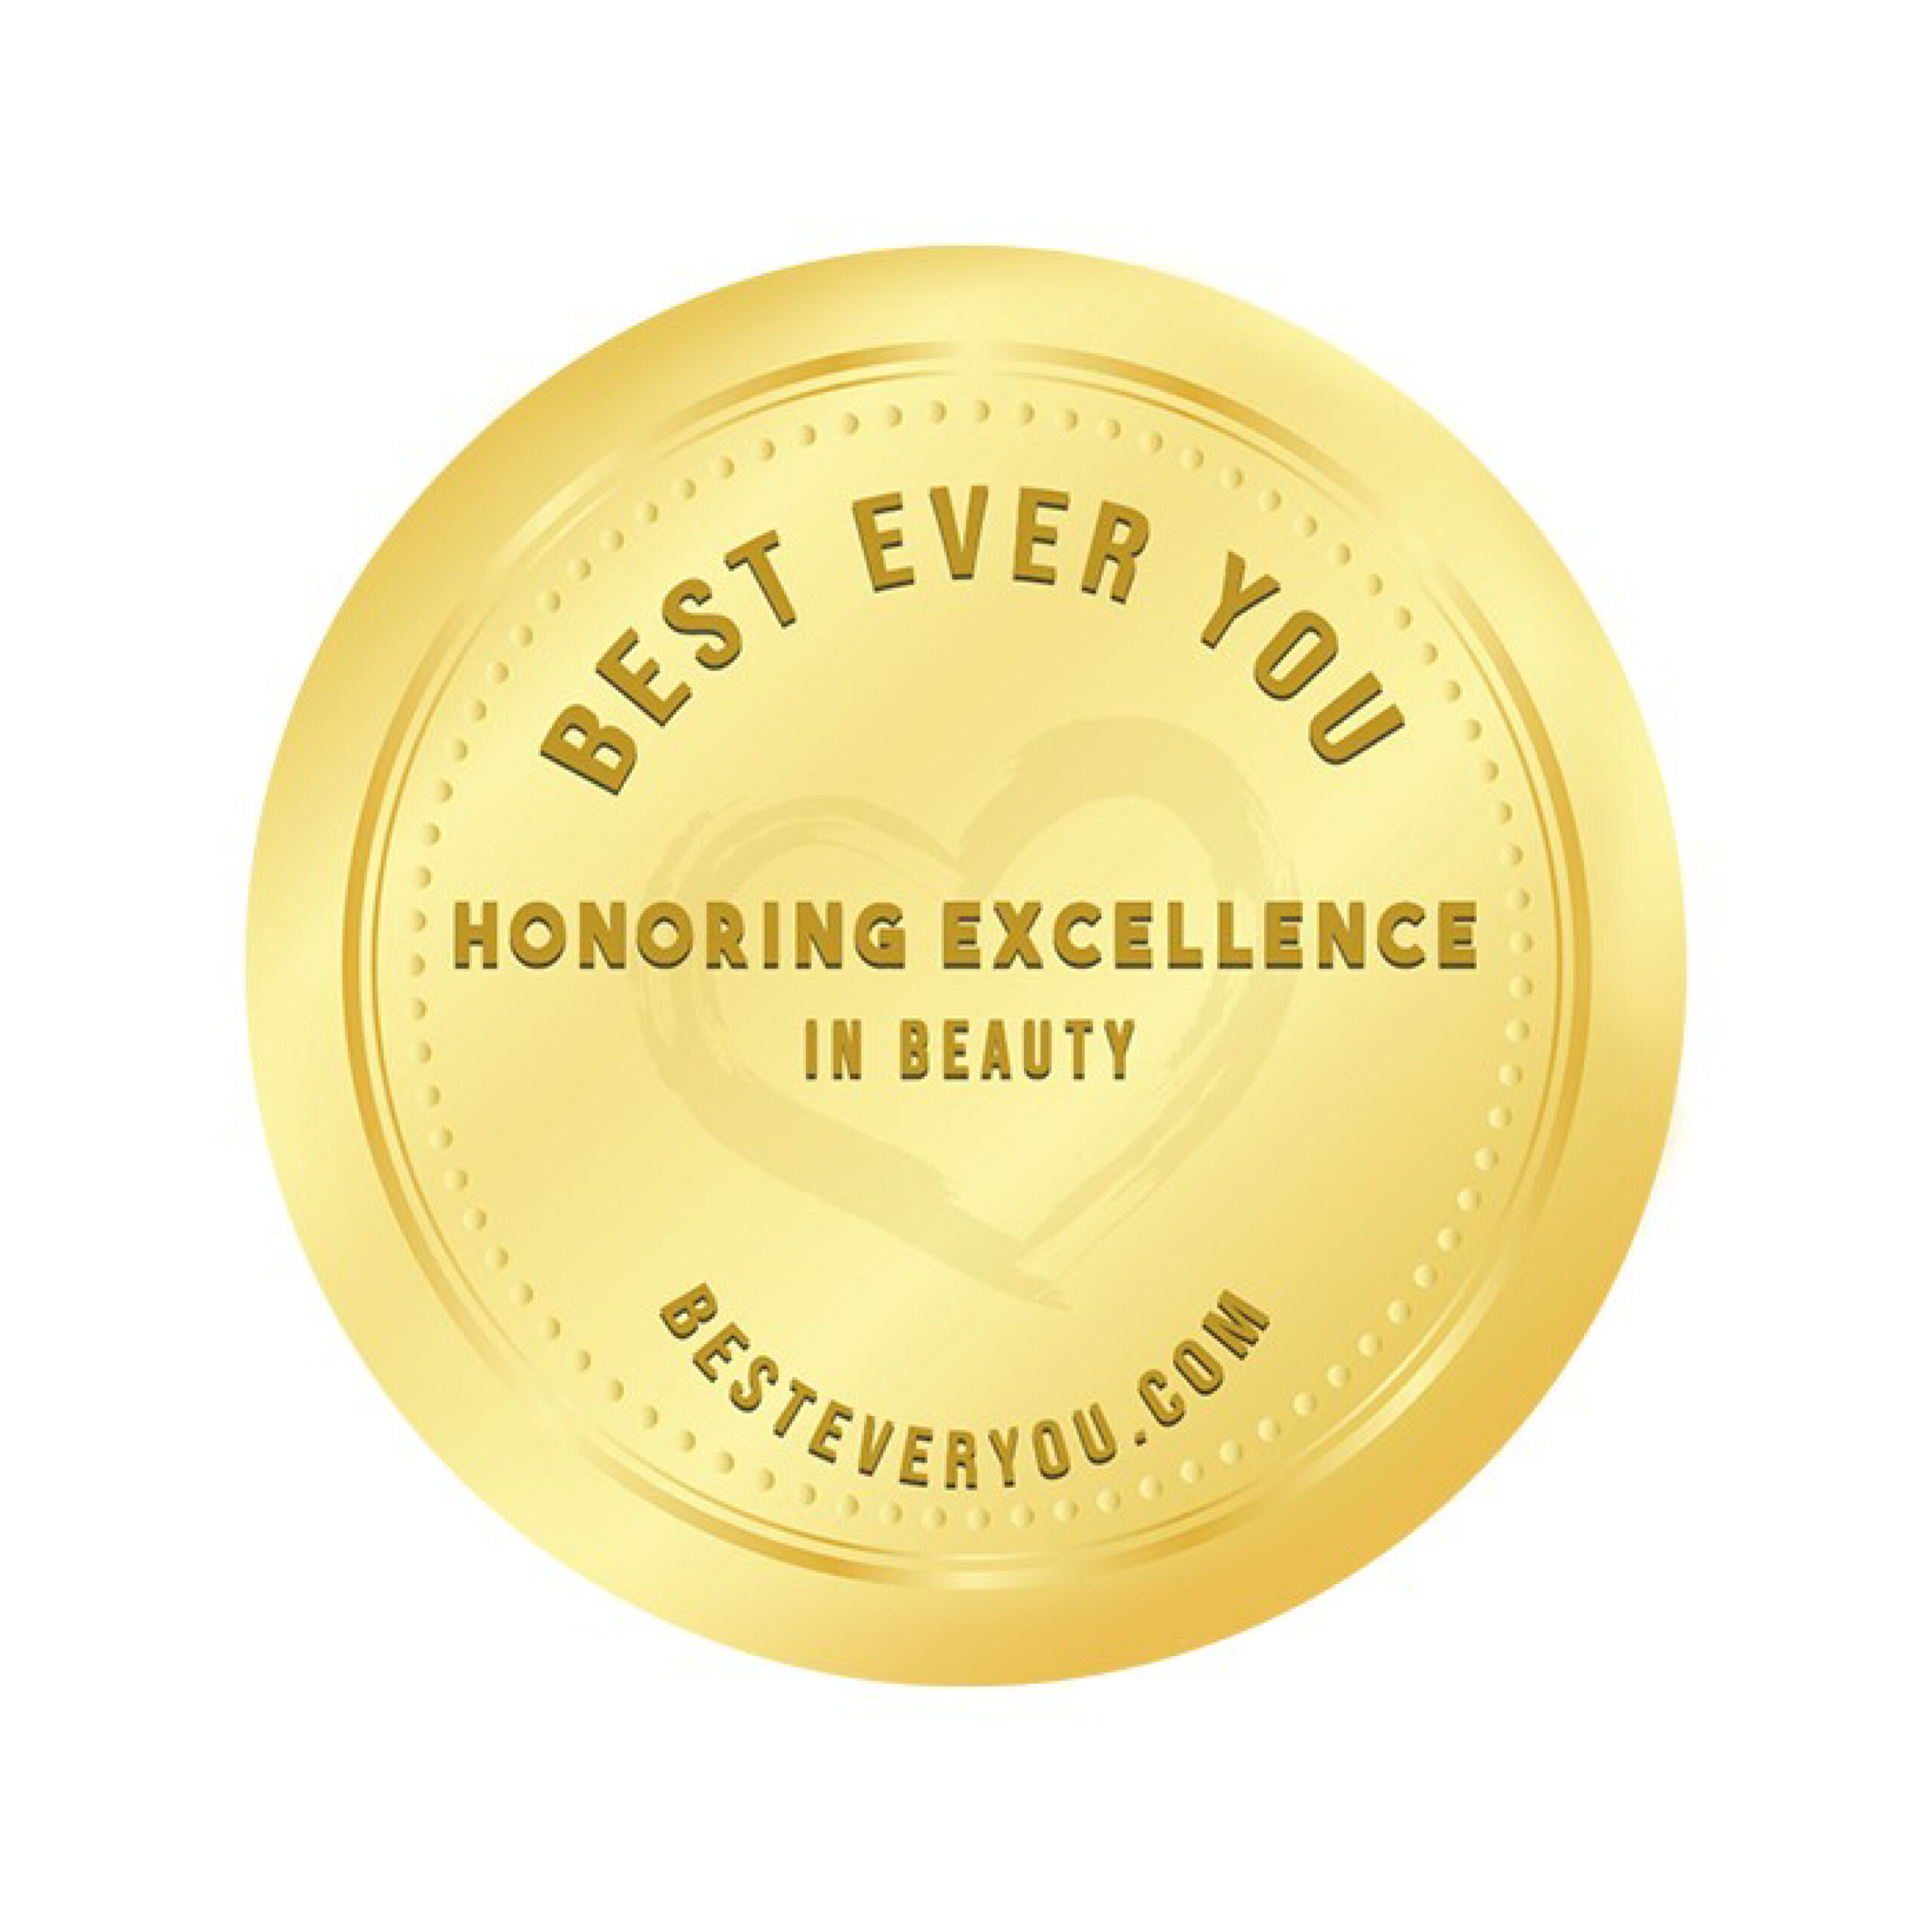 Skin2Skin Awarded Excellence in Beauty by Best Ever You